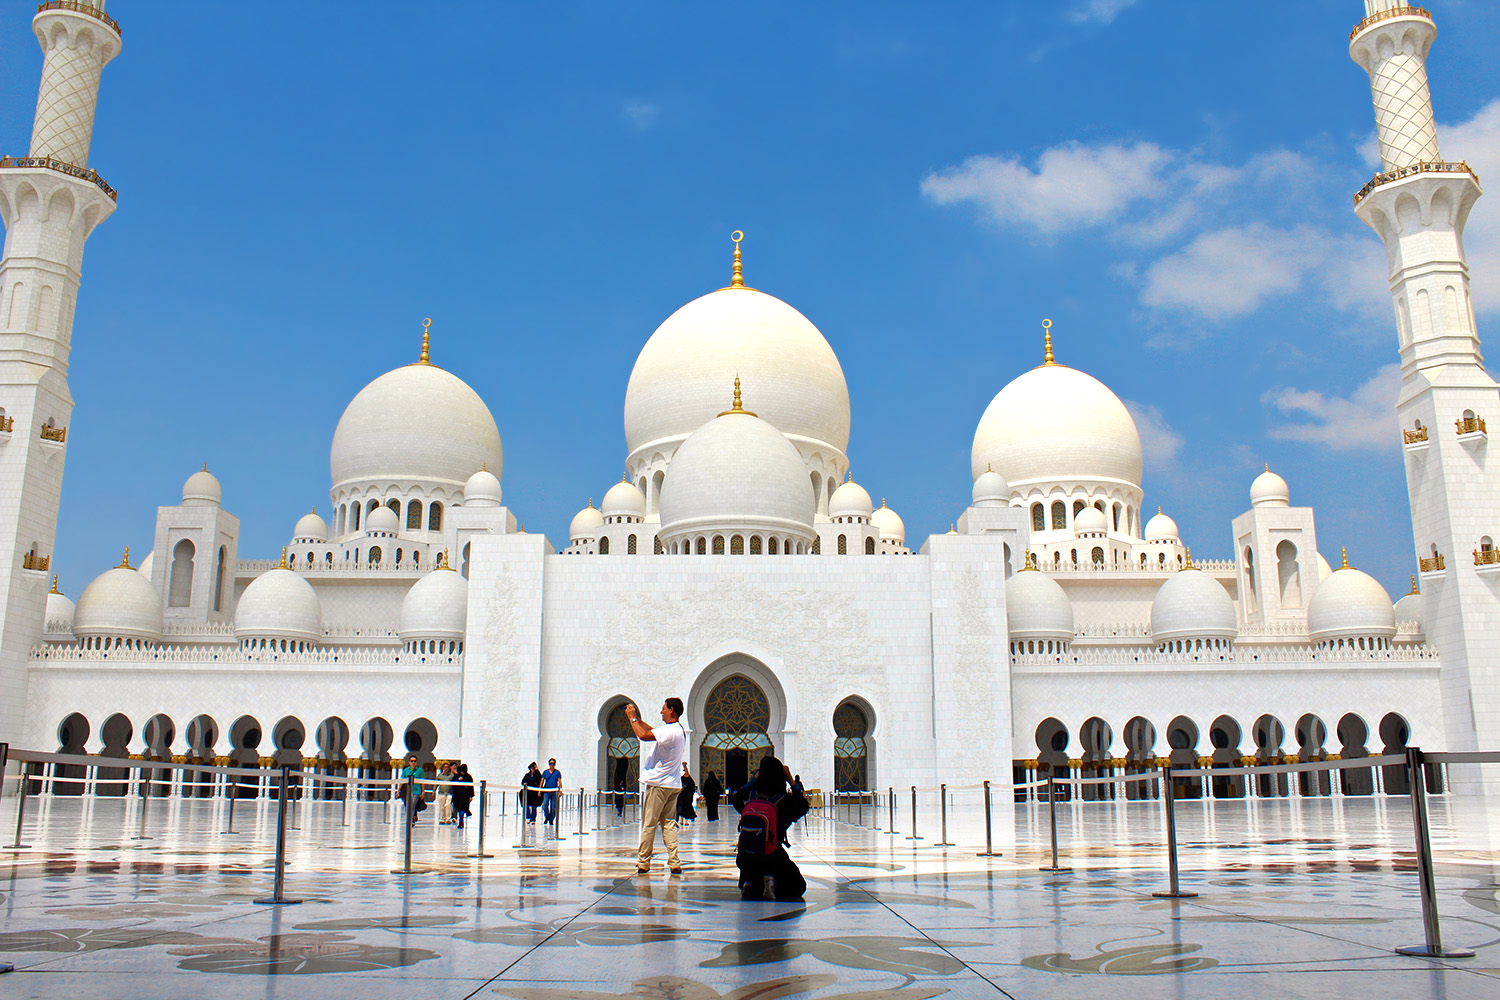 The Sheikh Zayed Mosque In Abu Dhabi Green And Turquoise